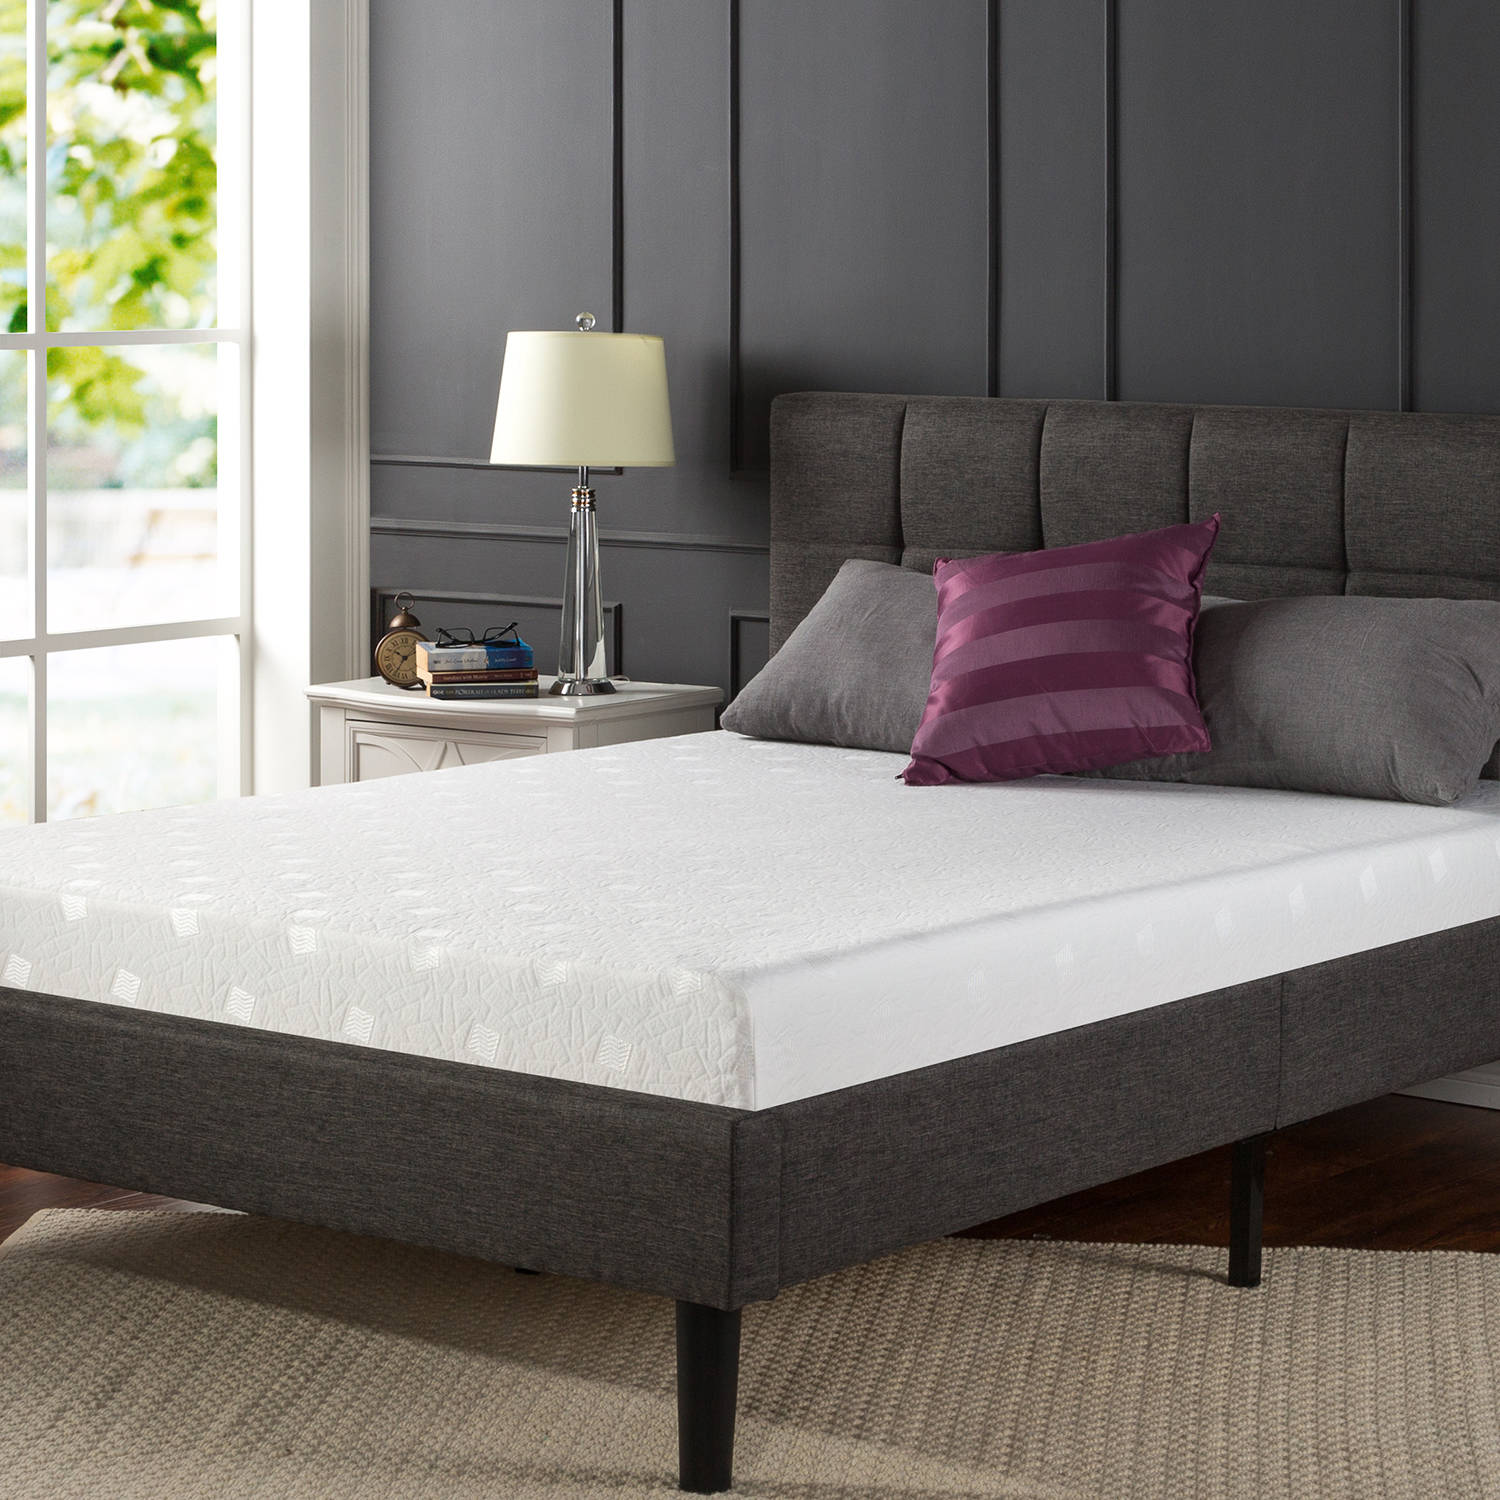 6inch Spa Sensations Comfort Memory Foam Mattress, Multiple Sizes